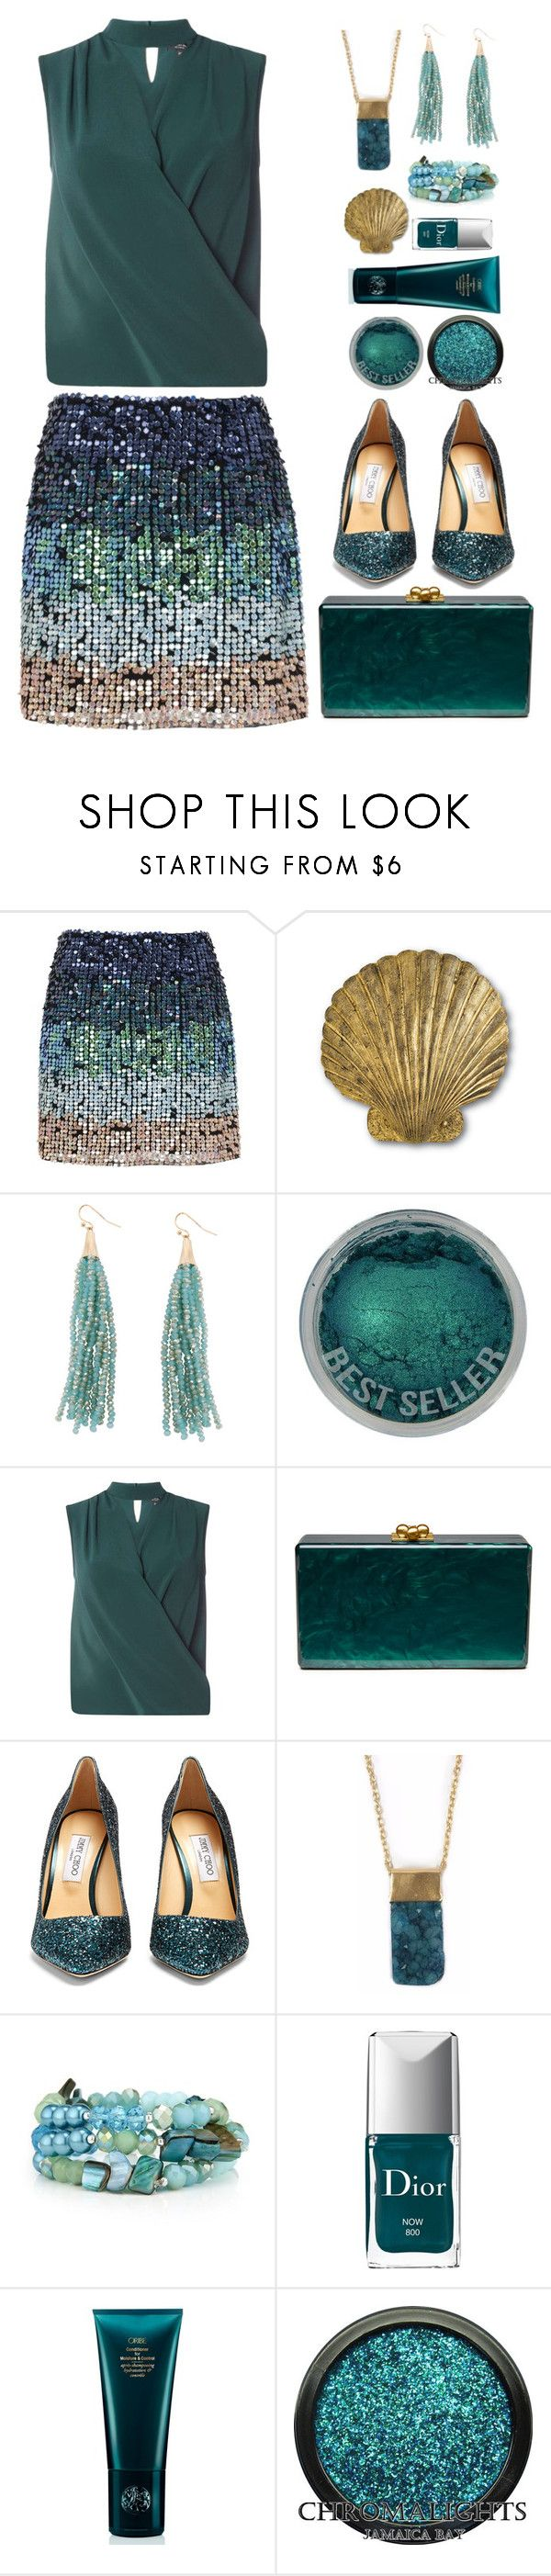 """Mermaid Inspired"" by gicreazioni ❤ liked on Polyvore featuring French Connection, Humble Chic, Dorothy Perkins, Edie Parker, Jimmy Choo, Christian Dior and Space NK"